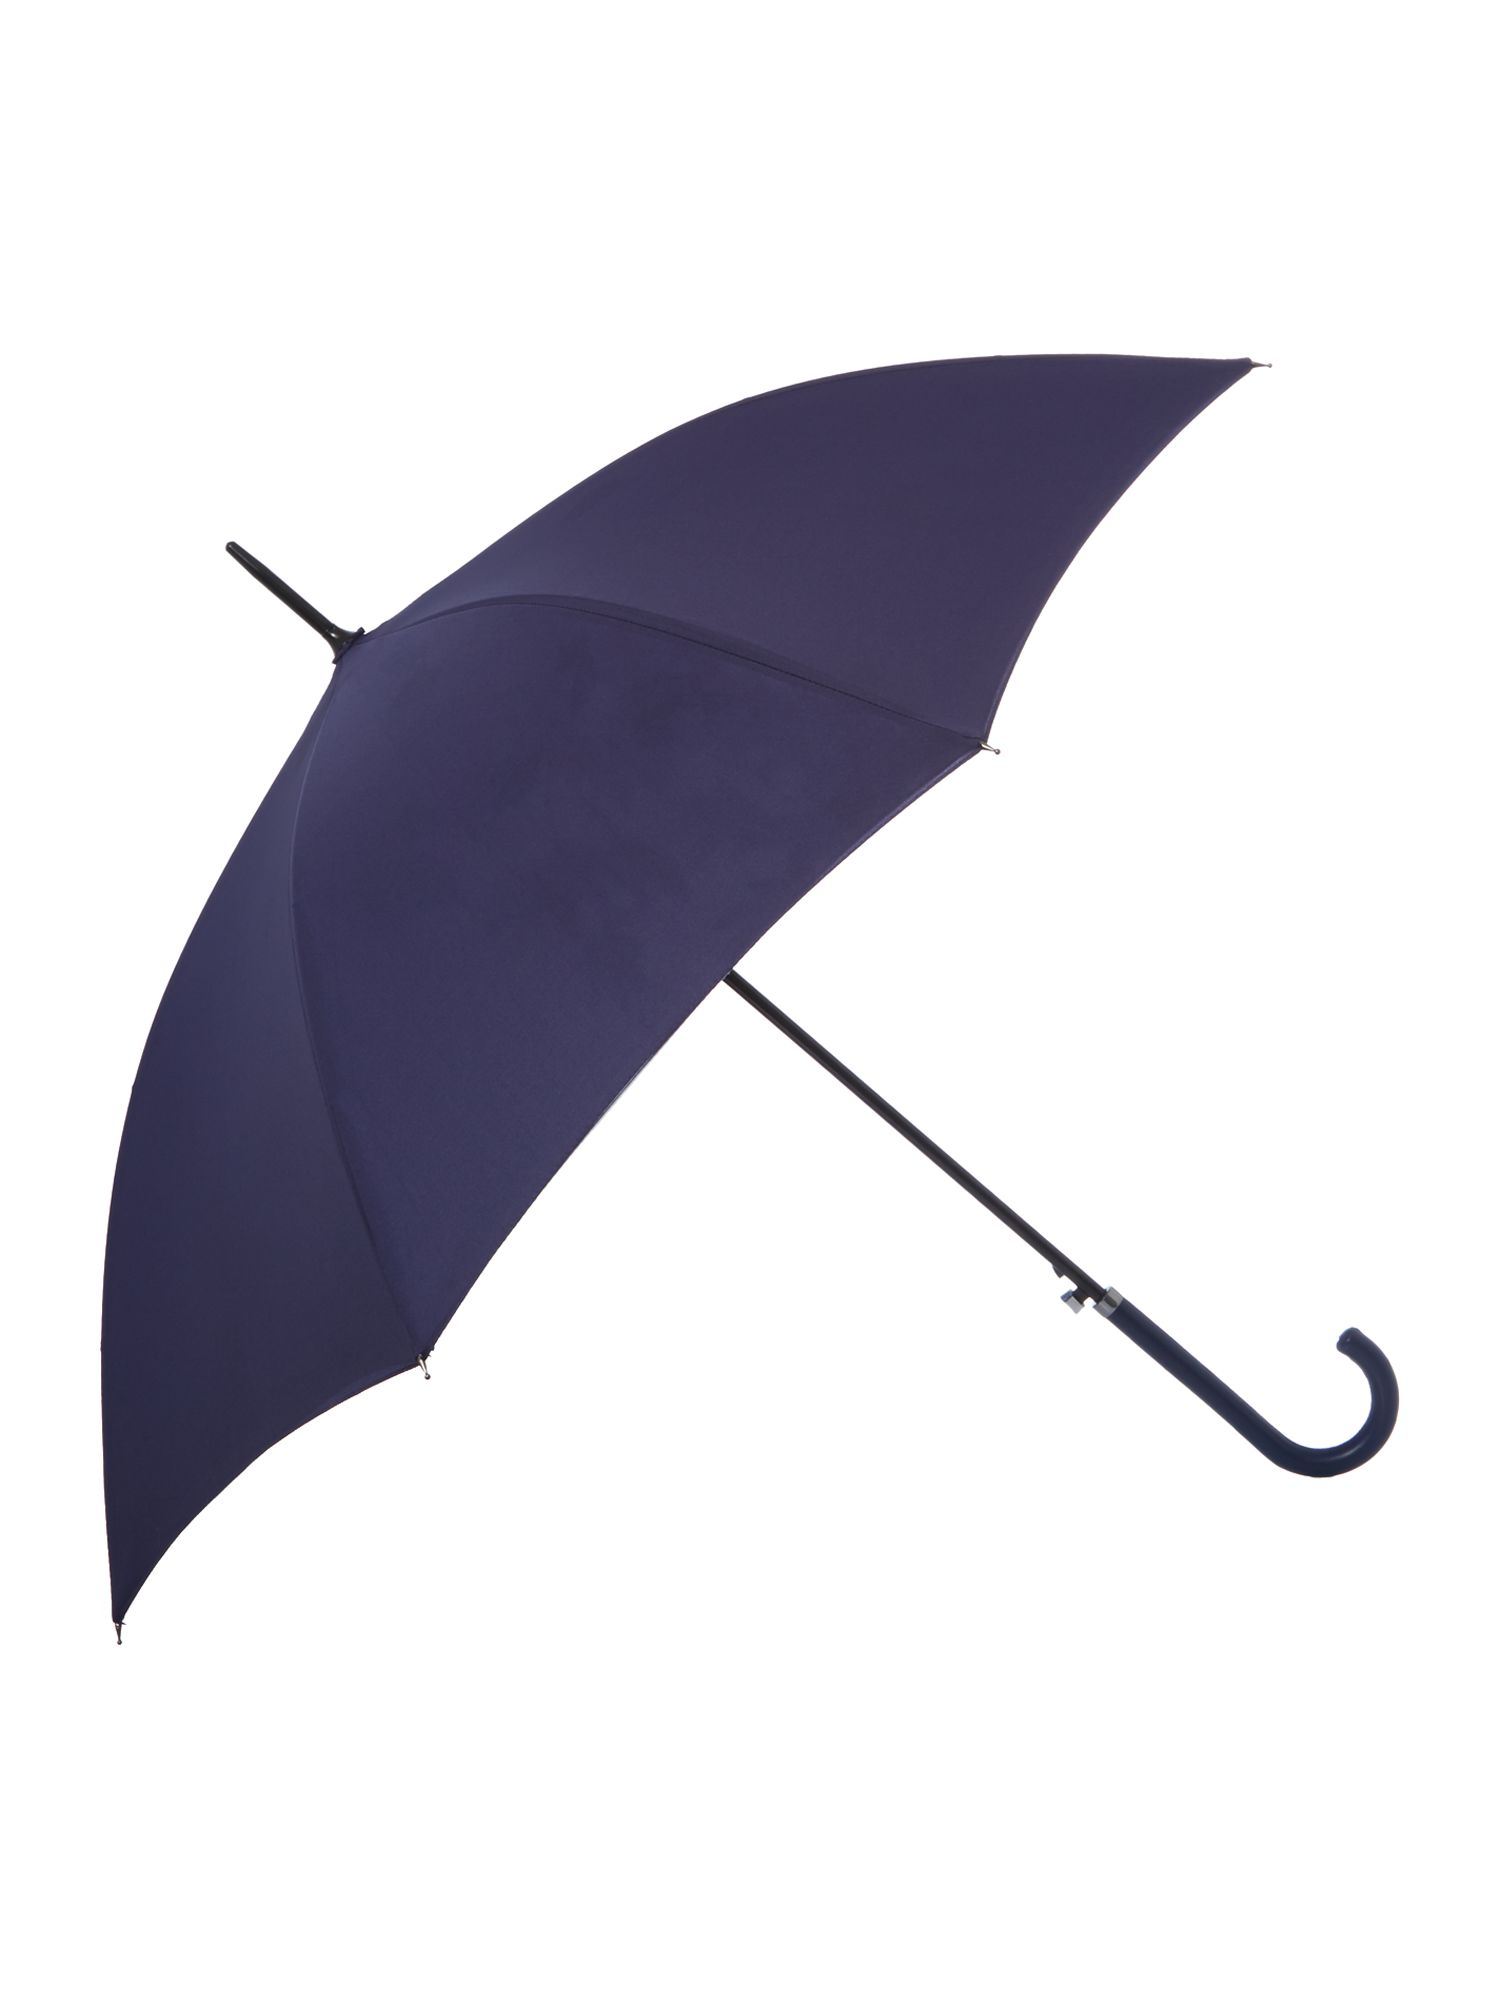 Bloomsbury falling leaf umbrella